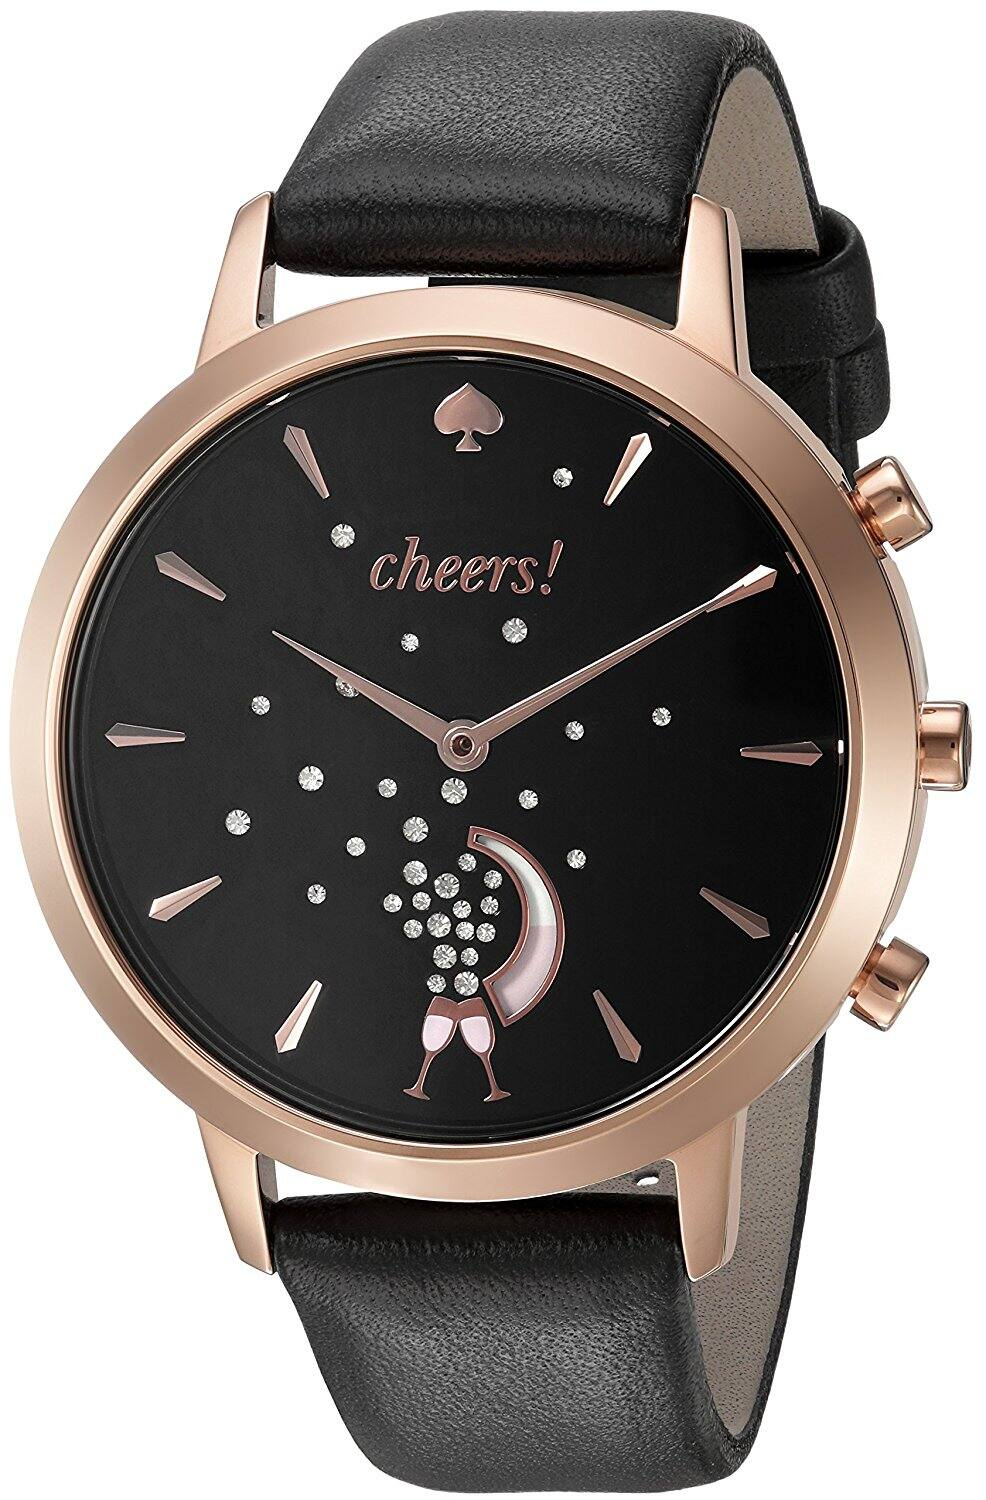 Kate Spade KST23100/23102 Grand Metro Women's Black and Rose Gold Hybrid Smartwatch $79.99 (was $250.00) FS @Amazon